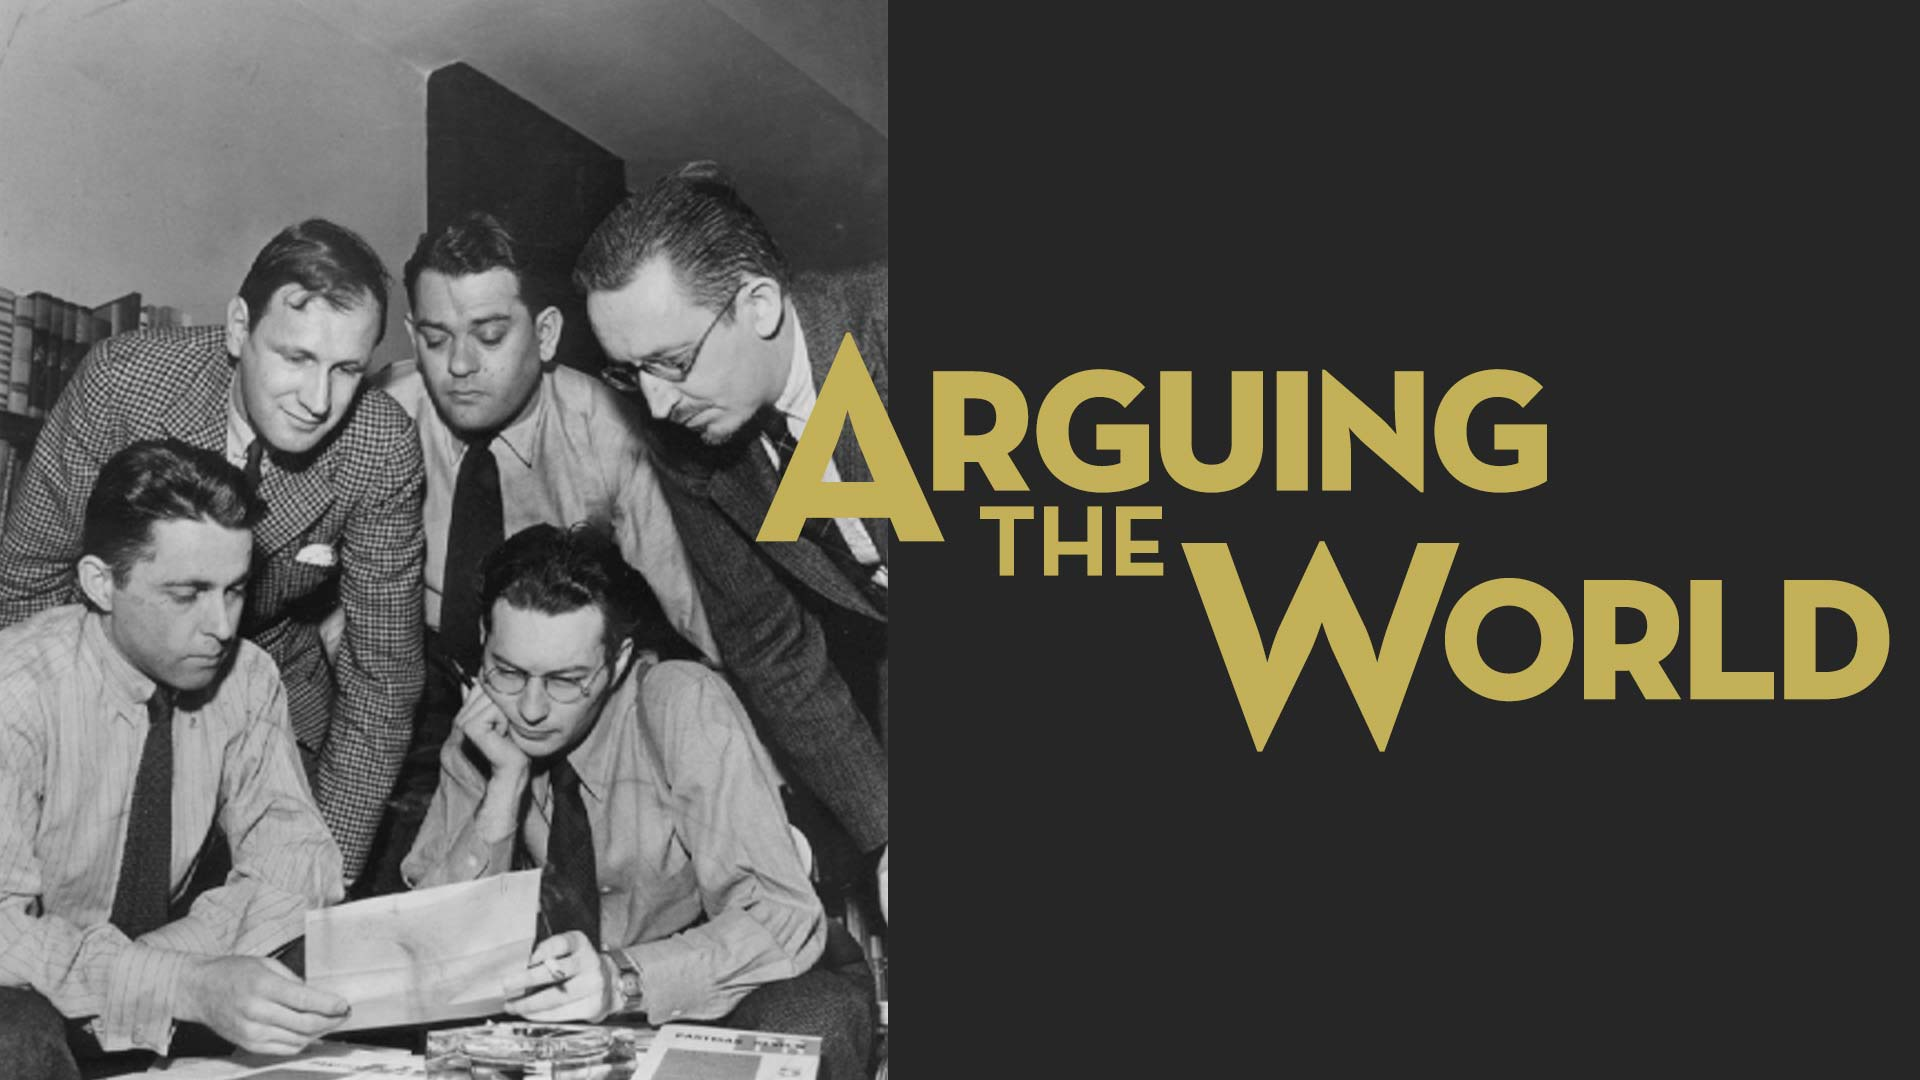 Arguing the World - image